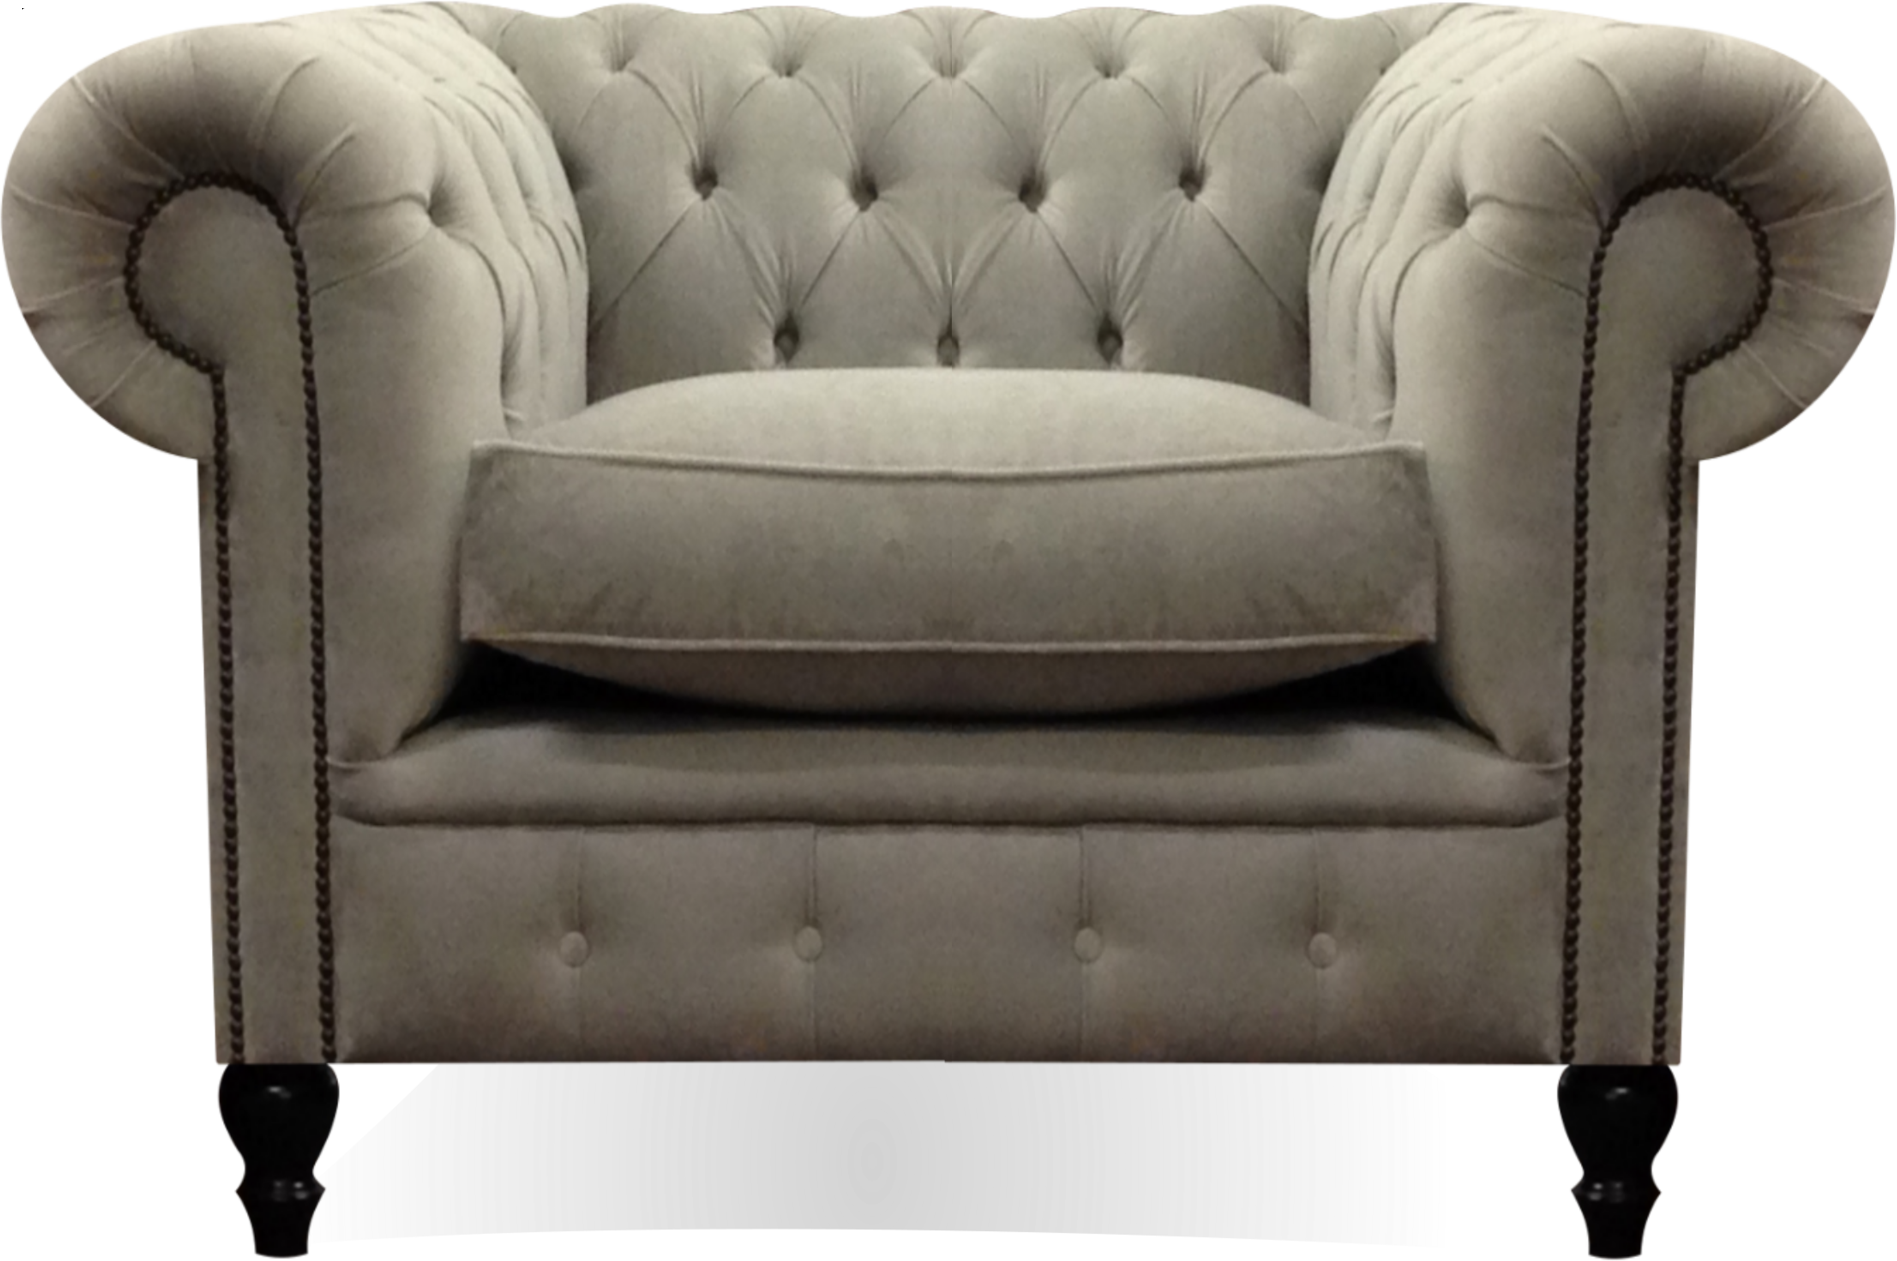 Armchair PNG Image.